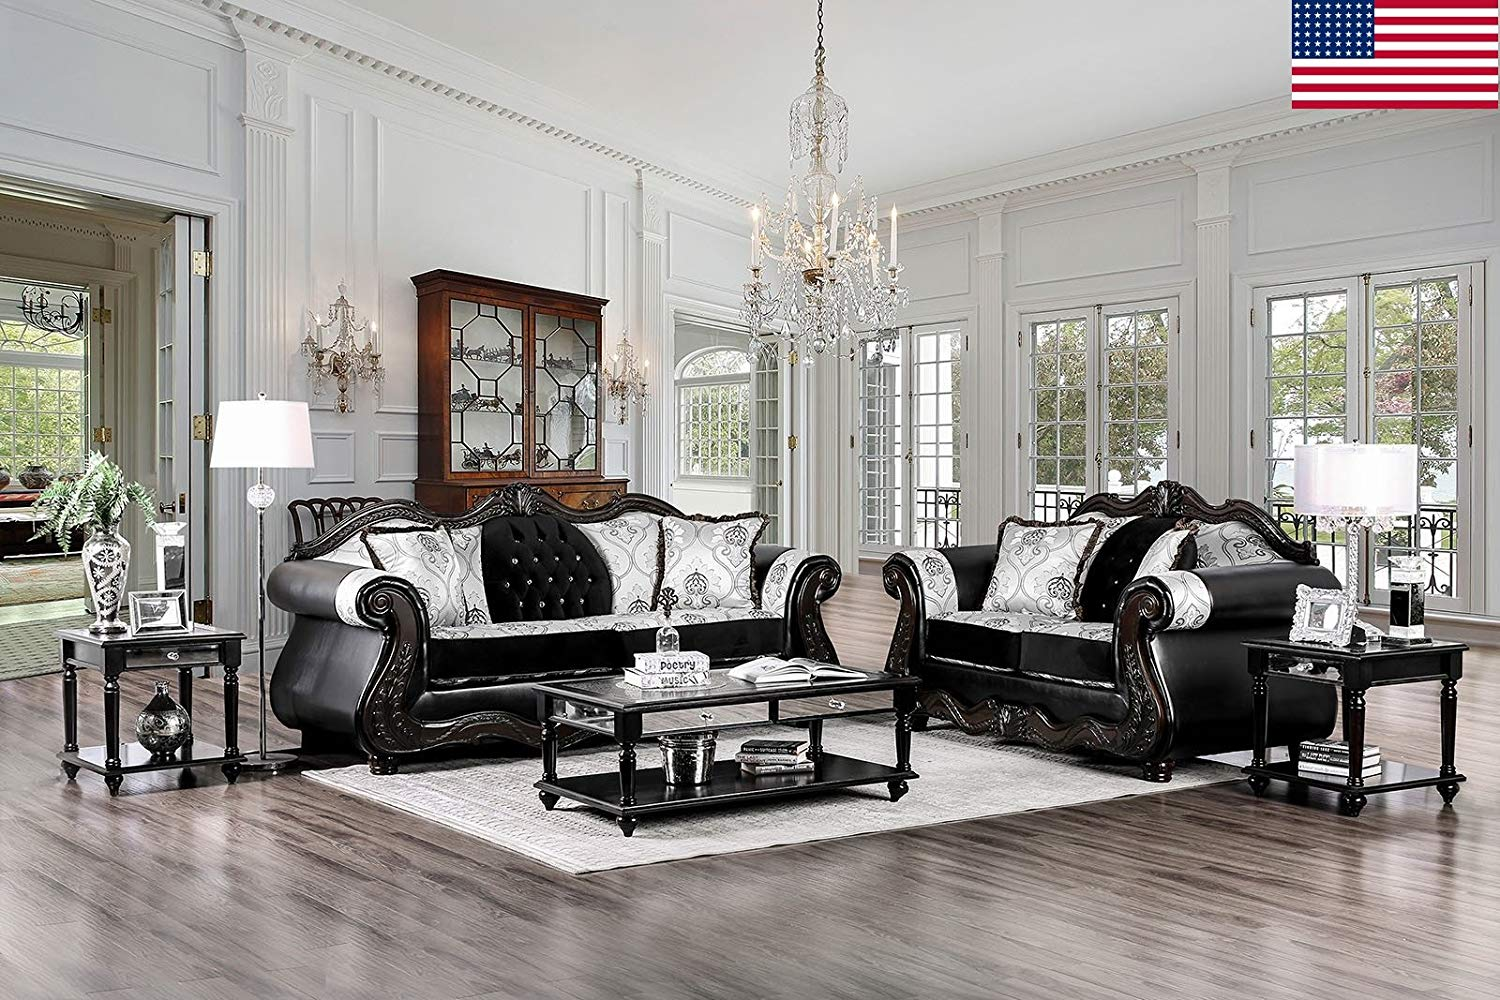 Get quotations · esofastore formal luxurious traditional design unique two tone back black sofa loveseat formal 2pc sofa